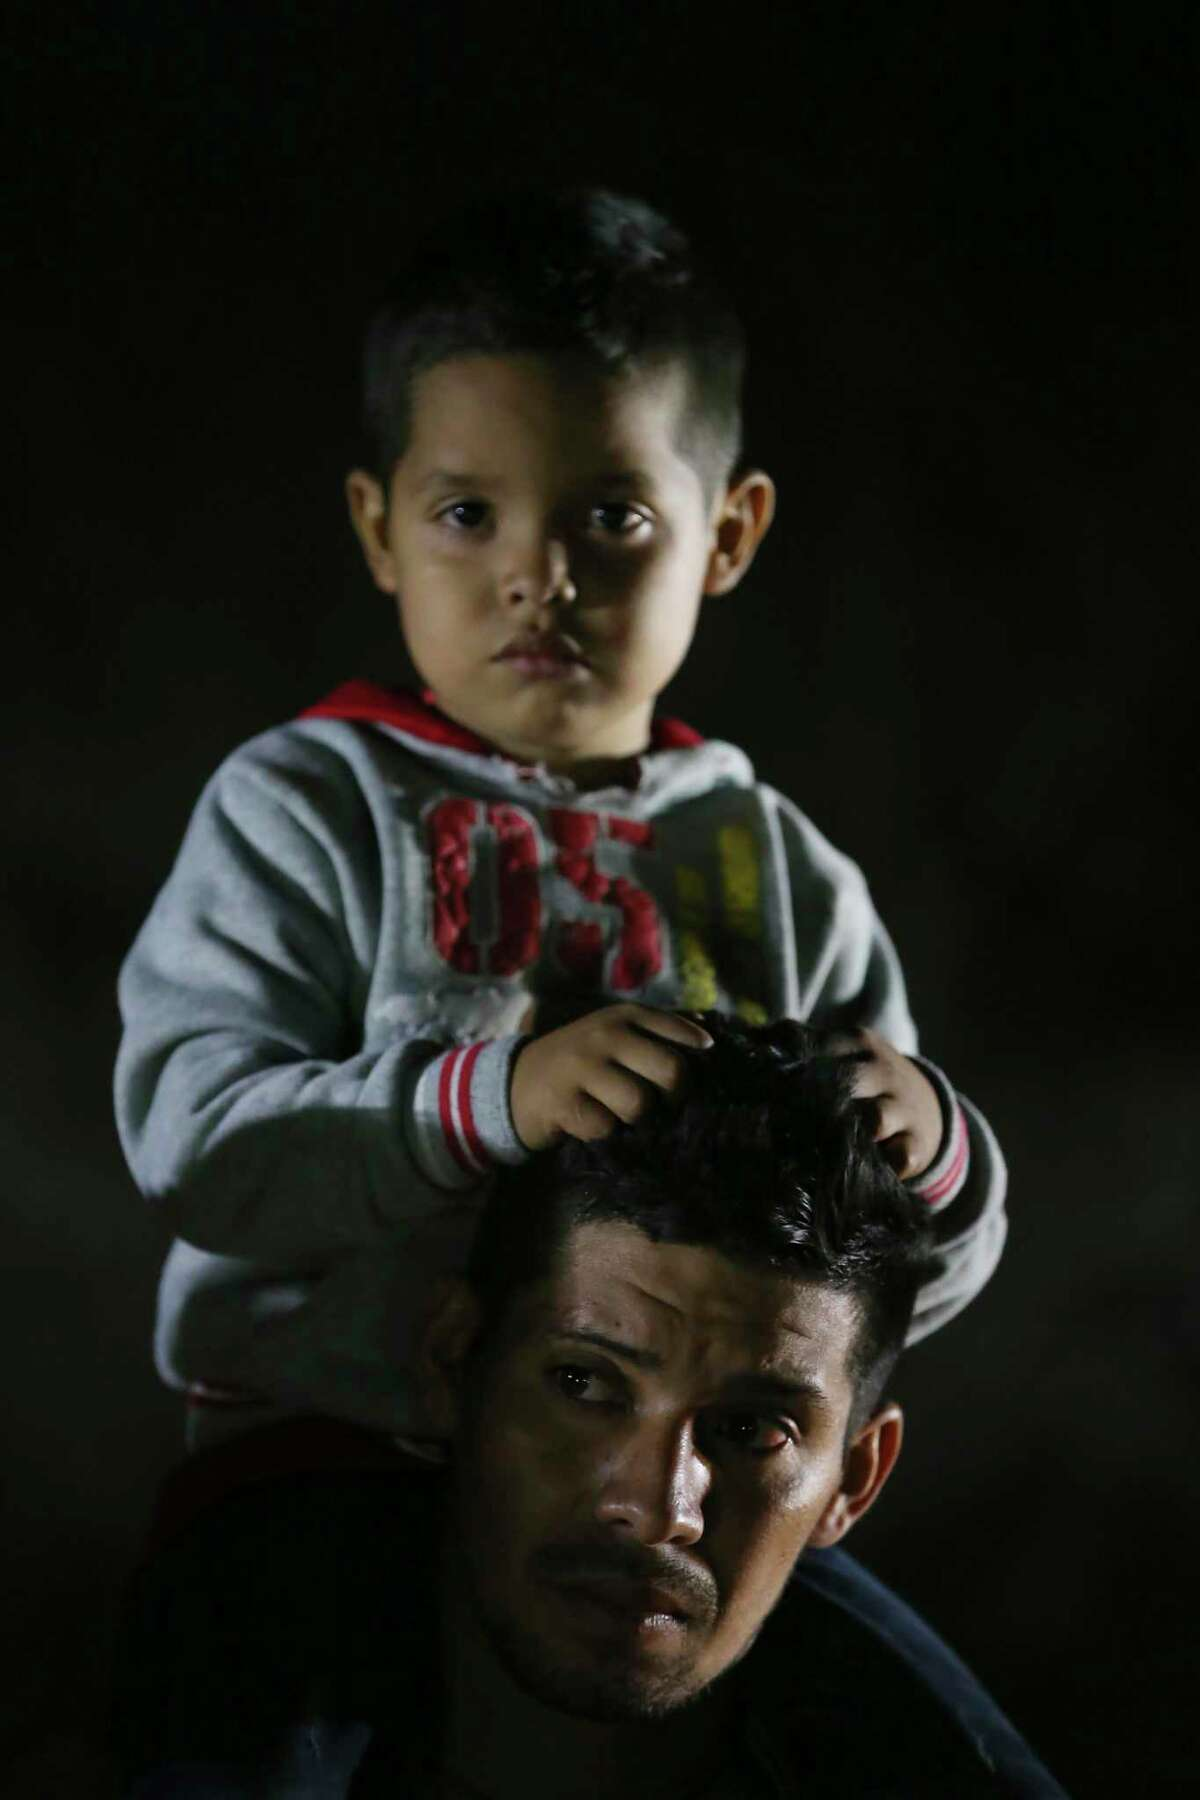 A migrant carries a child after crossing the Rio Grande into the U.S. at a placed called Rincon del Diablo, Devil's Corner, in Hidalgo County, Texas, Wednesday, Feb. 24, 2021. Over two hundred crossed a in short time at the spot where families turn themselves into immigration authorities.